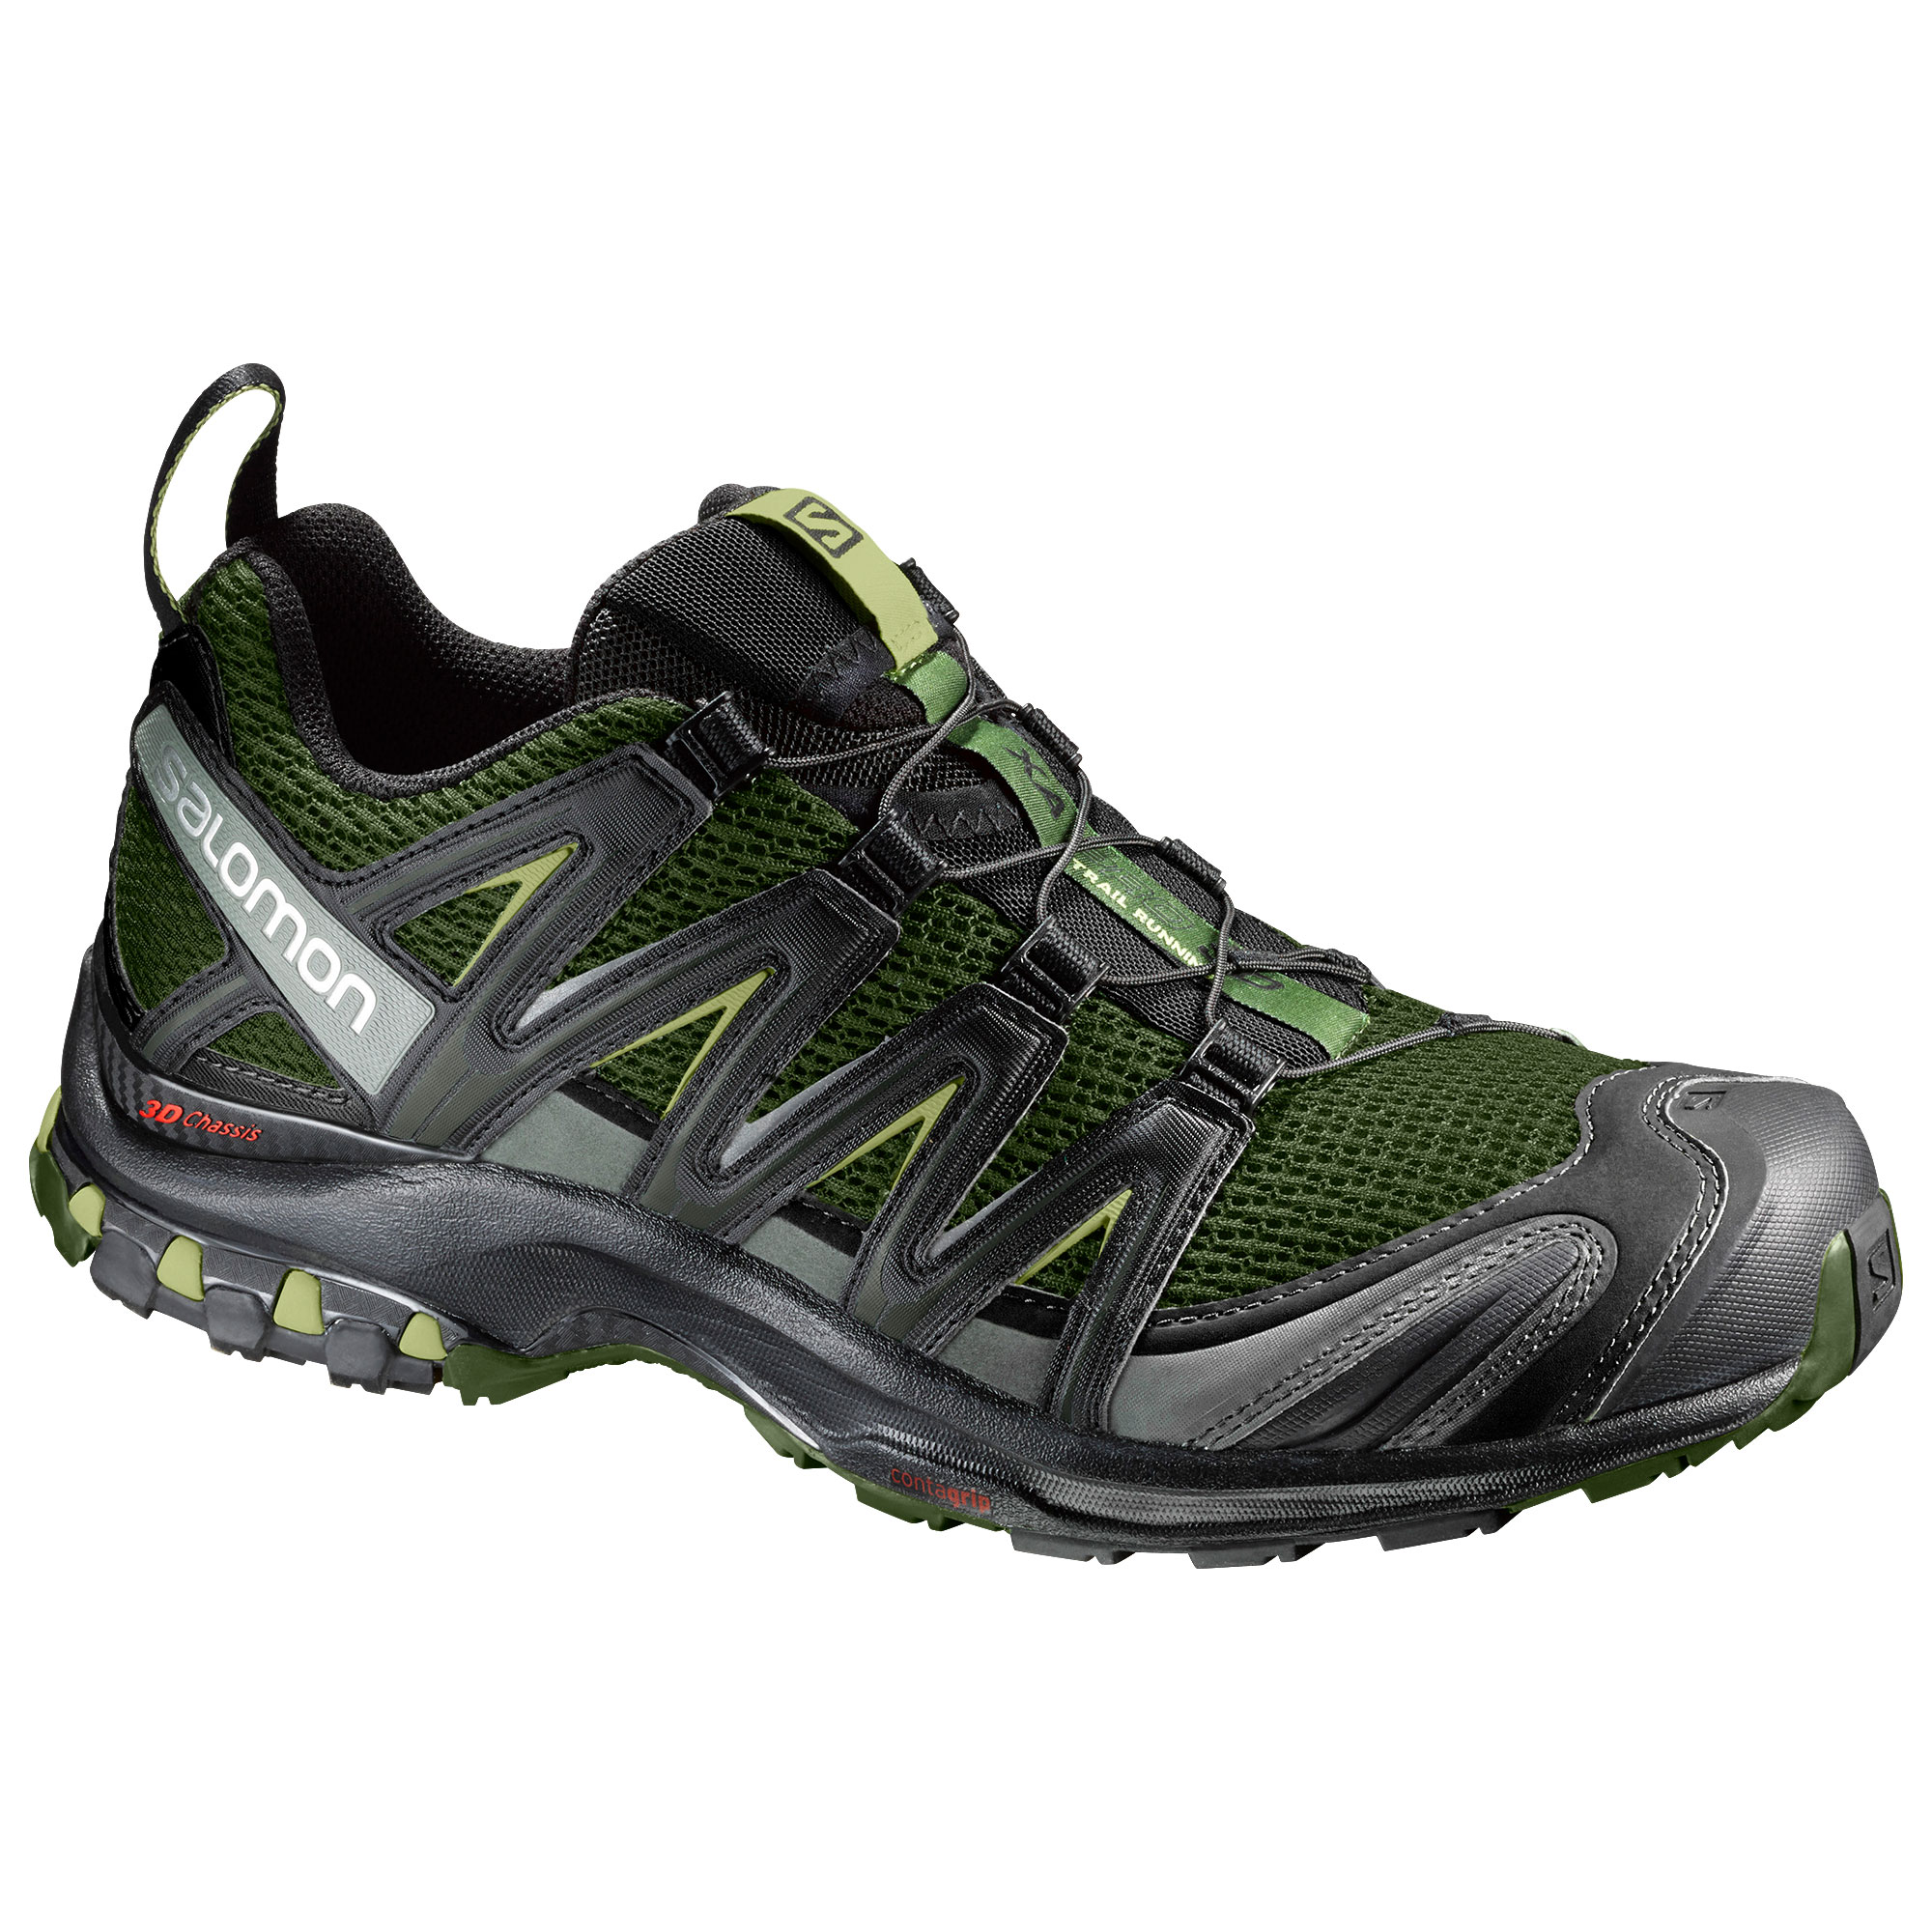 salomon online sale, Salomon XA Pro 3D GTX BlueGreen Trail